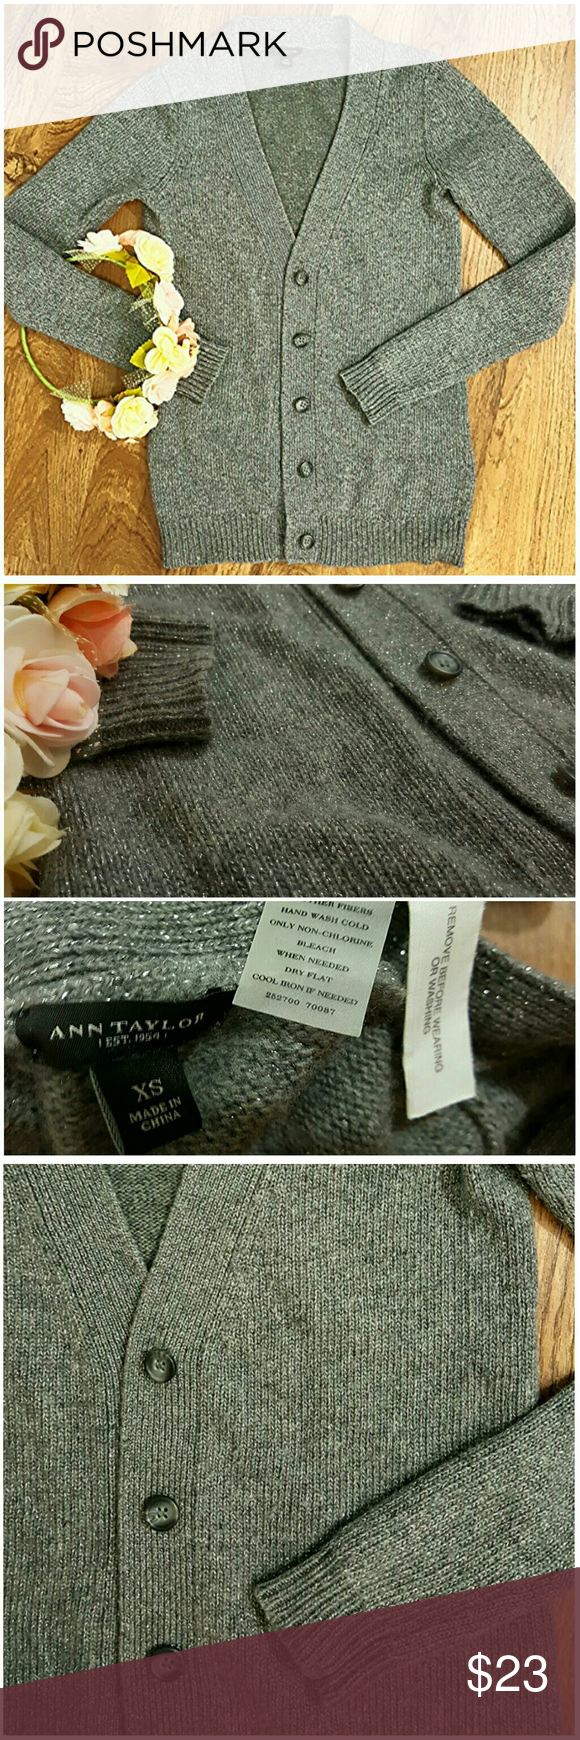 Ann Taylor classic wool cardigan XS  Dark gray. Foil/metallic in fabric gives glittery appearance! Good condition!  Classic cardi! Made with wool, nylon and other fibers  Versatile and easy to match. Great for layering. Ann Taylor Sweaters Cardigans